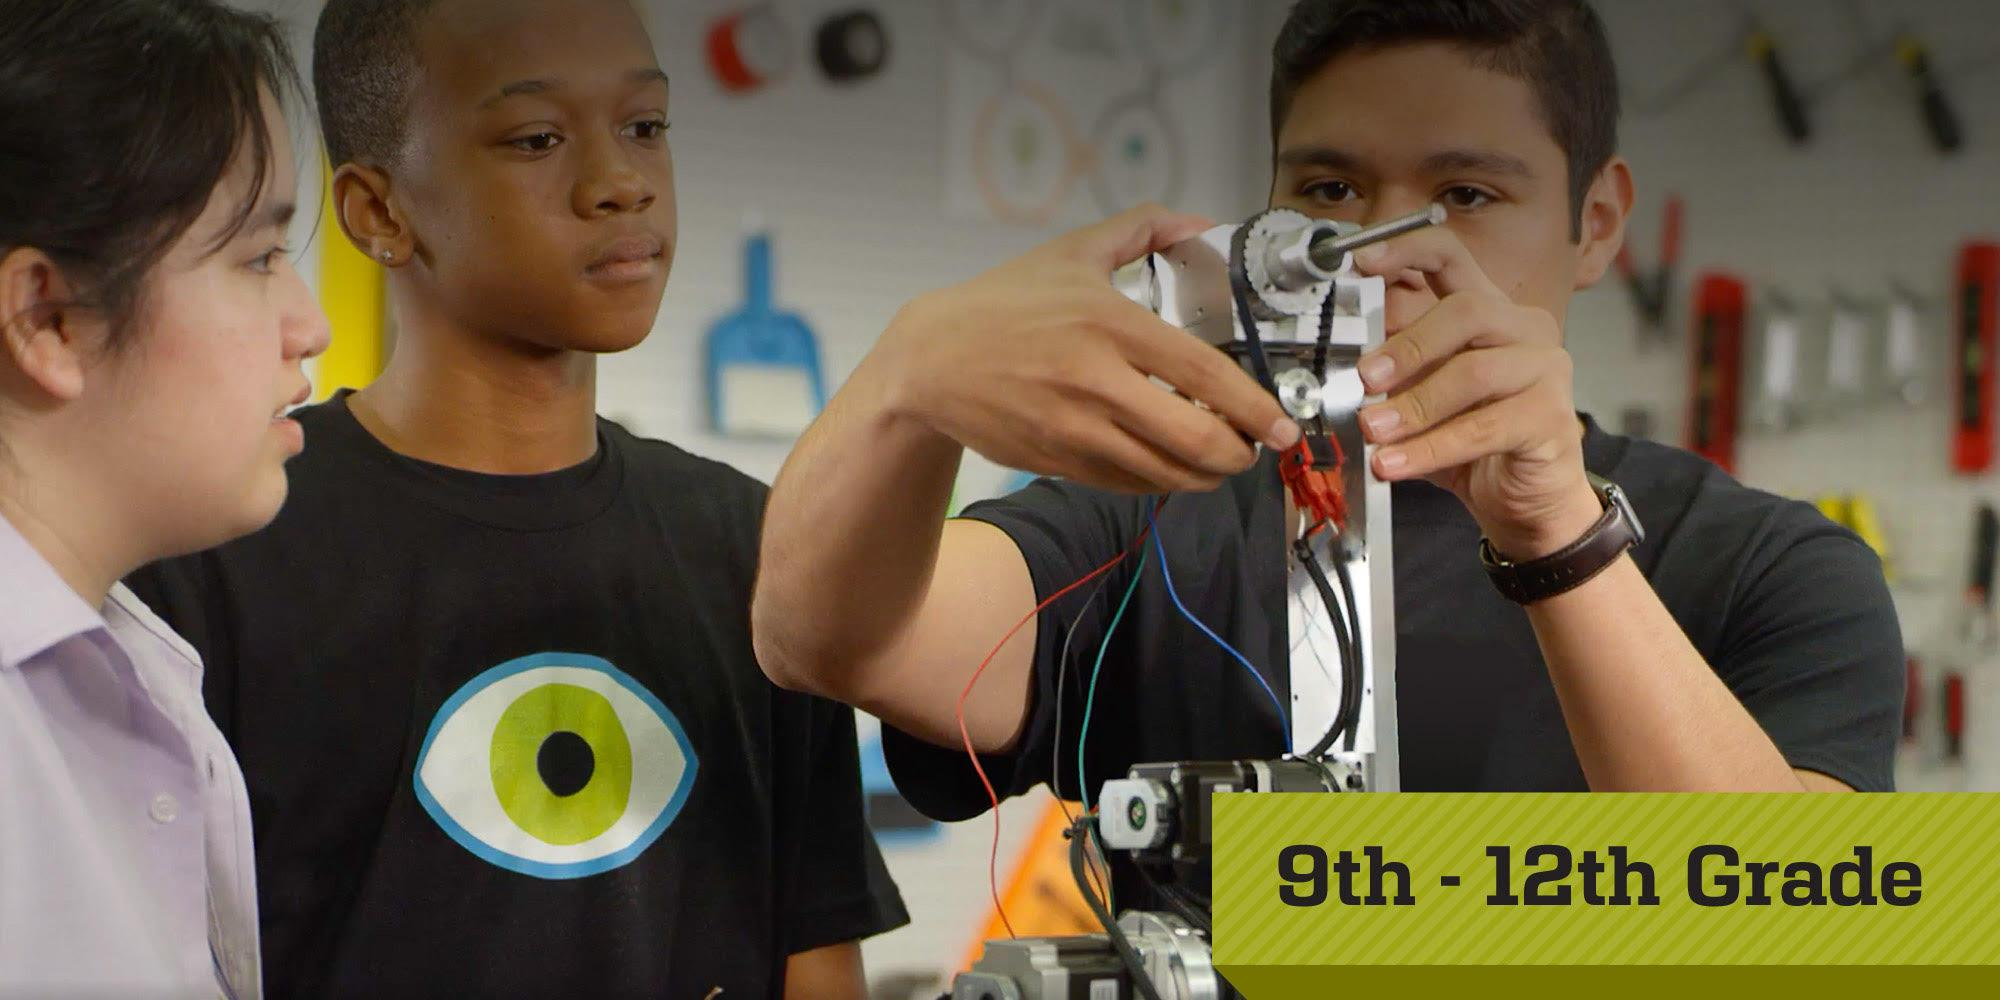 9th - 12th Grade at Urban Discovery Schools